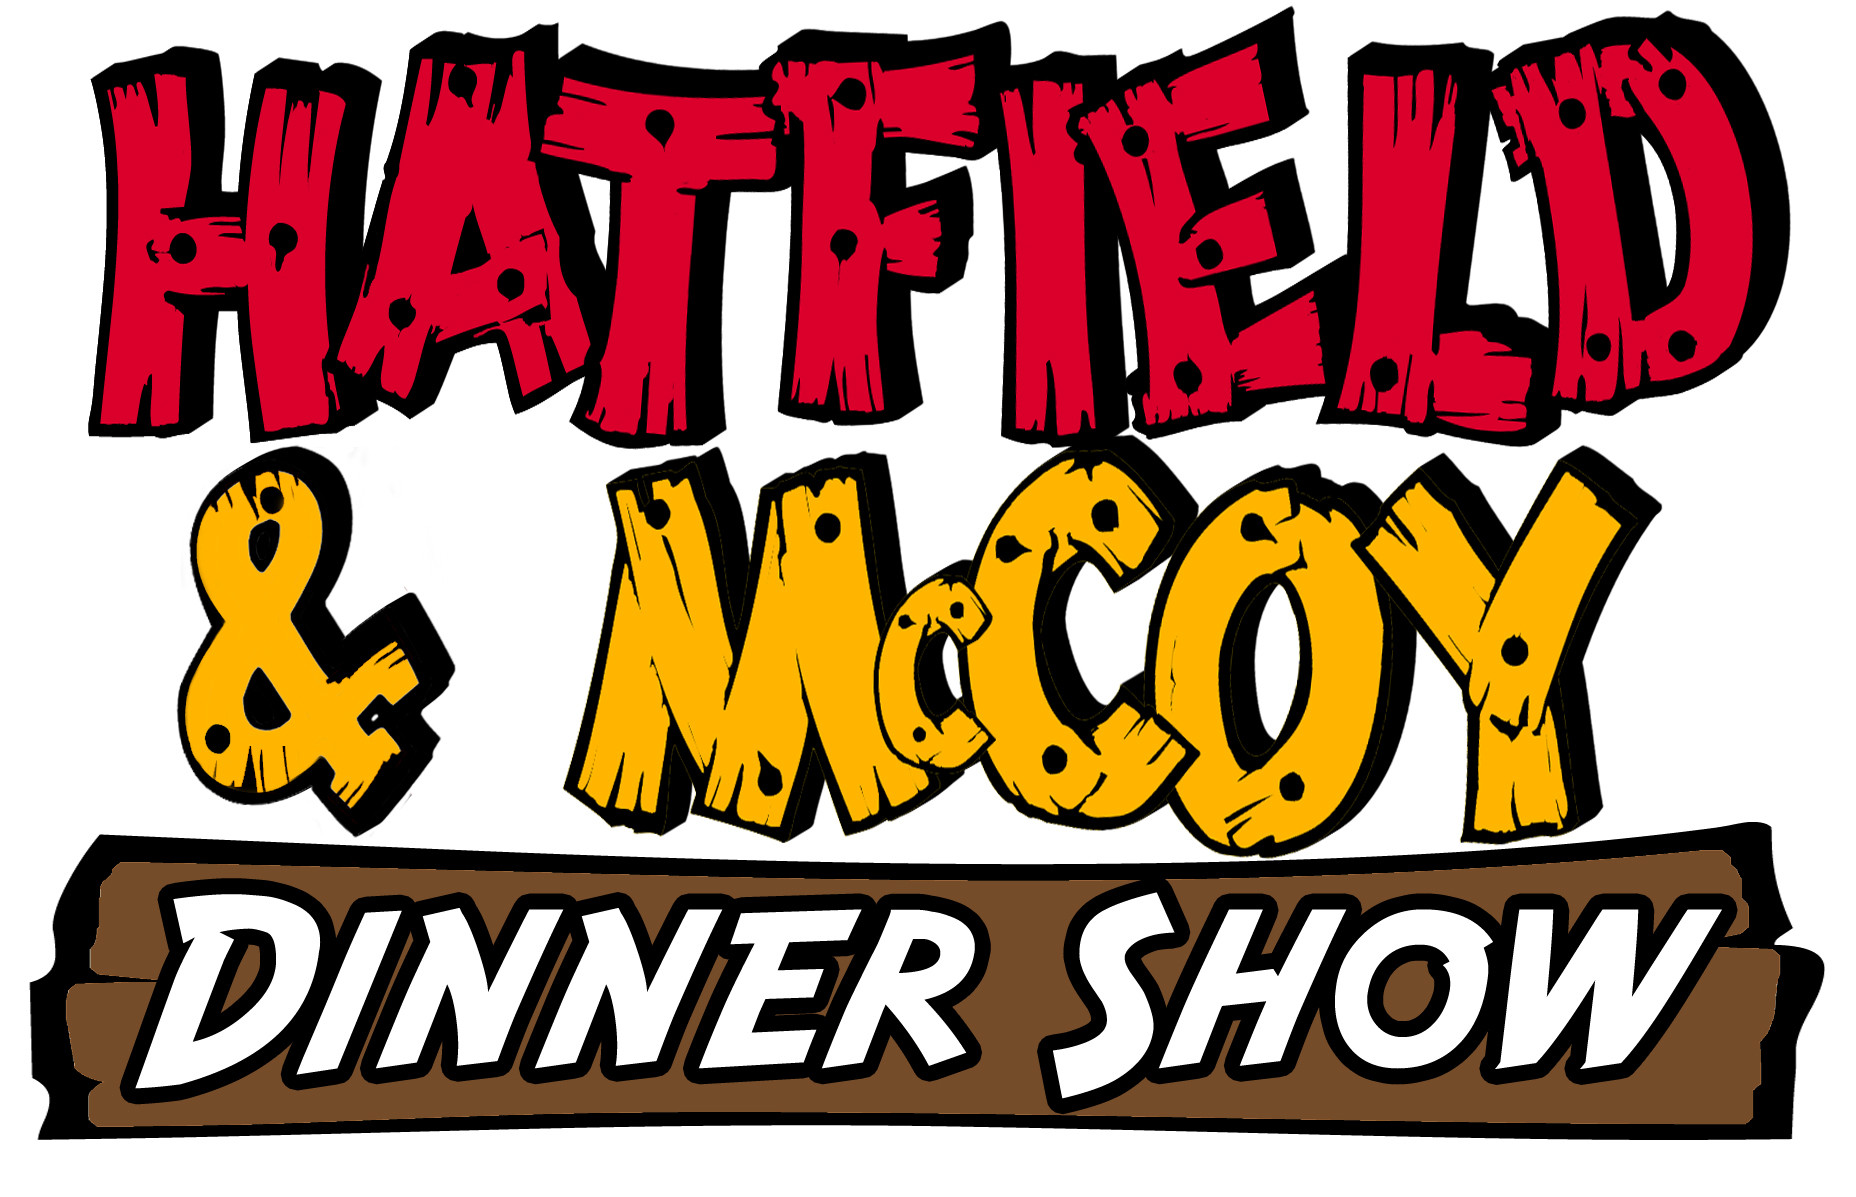 Hatfields And Mccoys Dinner Show  Hatfield & McCoy Dinner Show at Pigeon Forge Tennessee